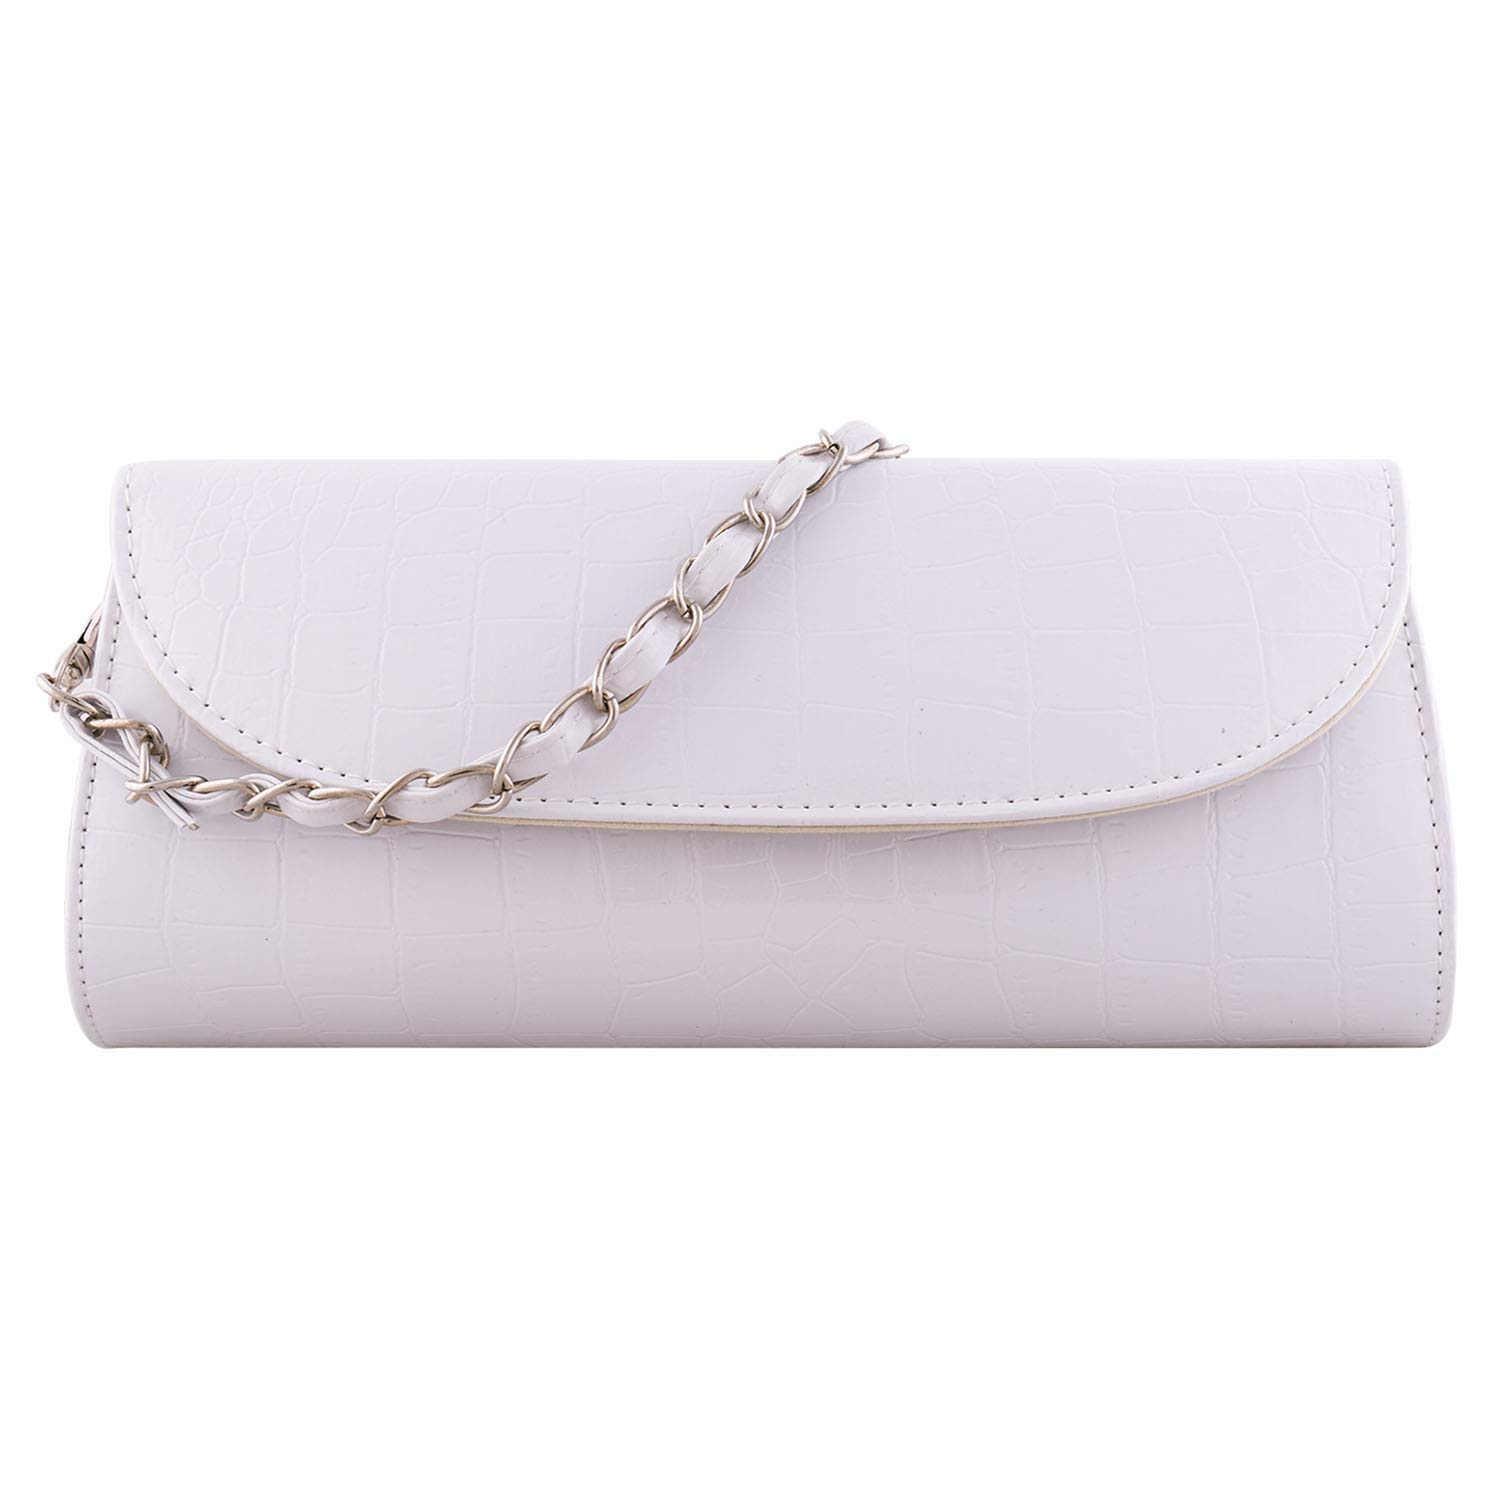 Bundle Monster Womens Envelope Evening Patent Croc Skin Embossed Clutch - WHITE by Bundle Monster (Image #1)